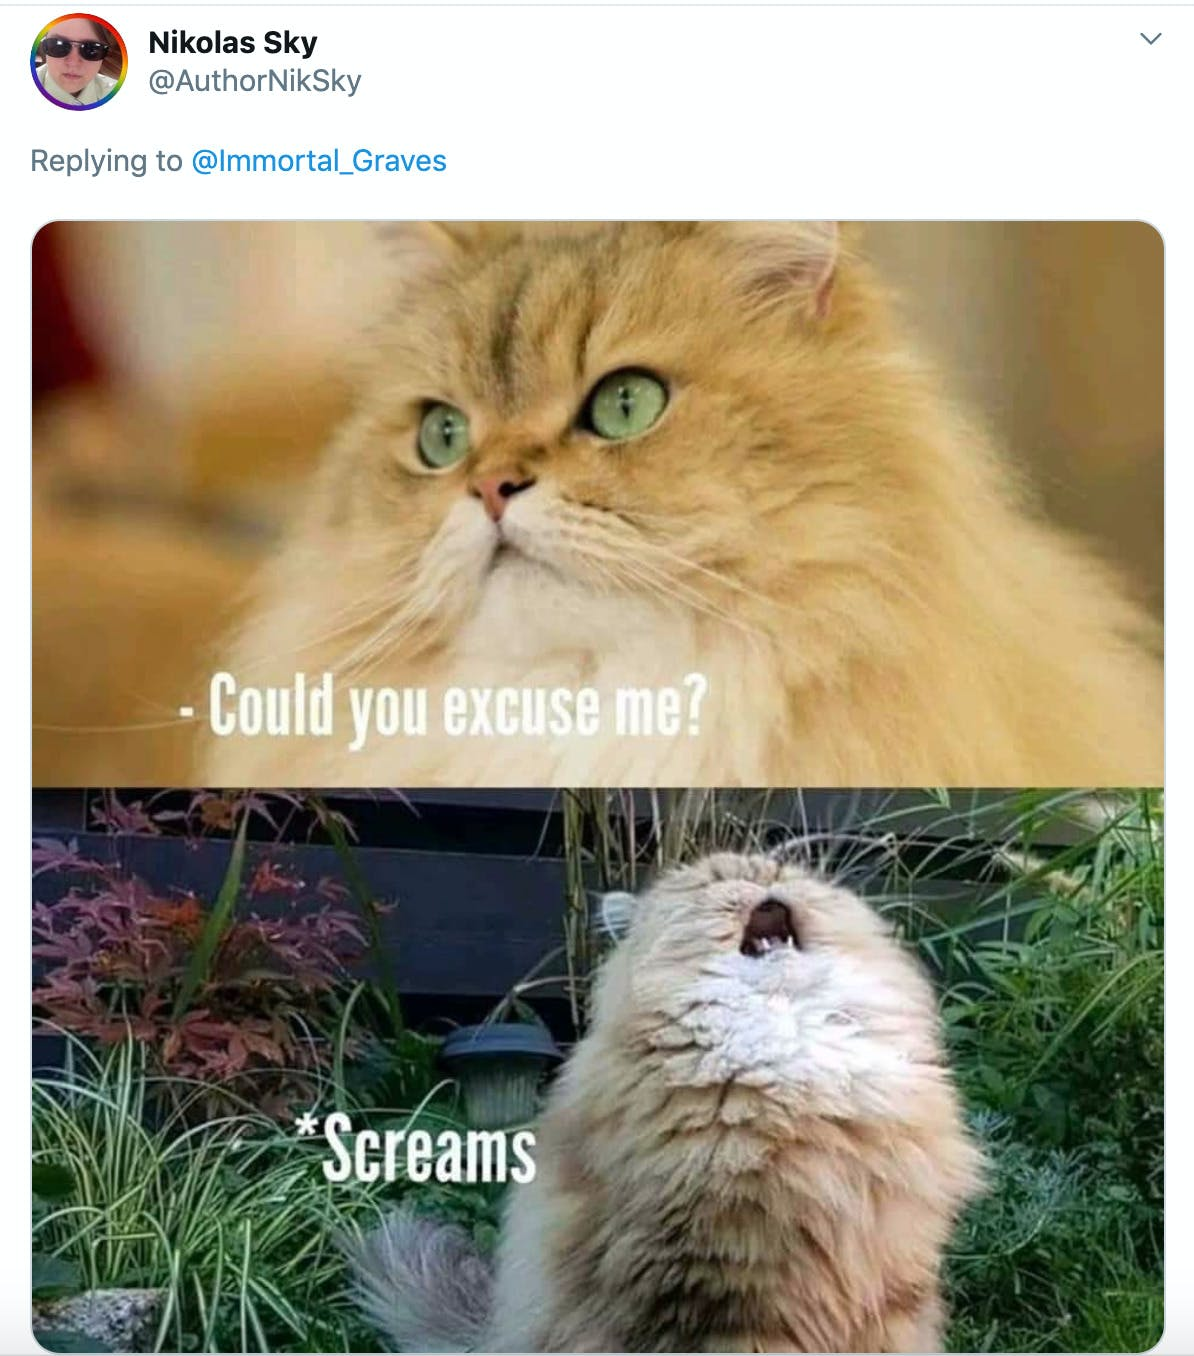 """Two pictures of a fluffy orange cat, the first has """"could you please excuse me?"""" written on it and the second features it screaming at the sky"""